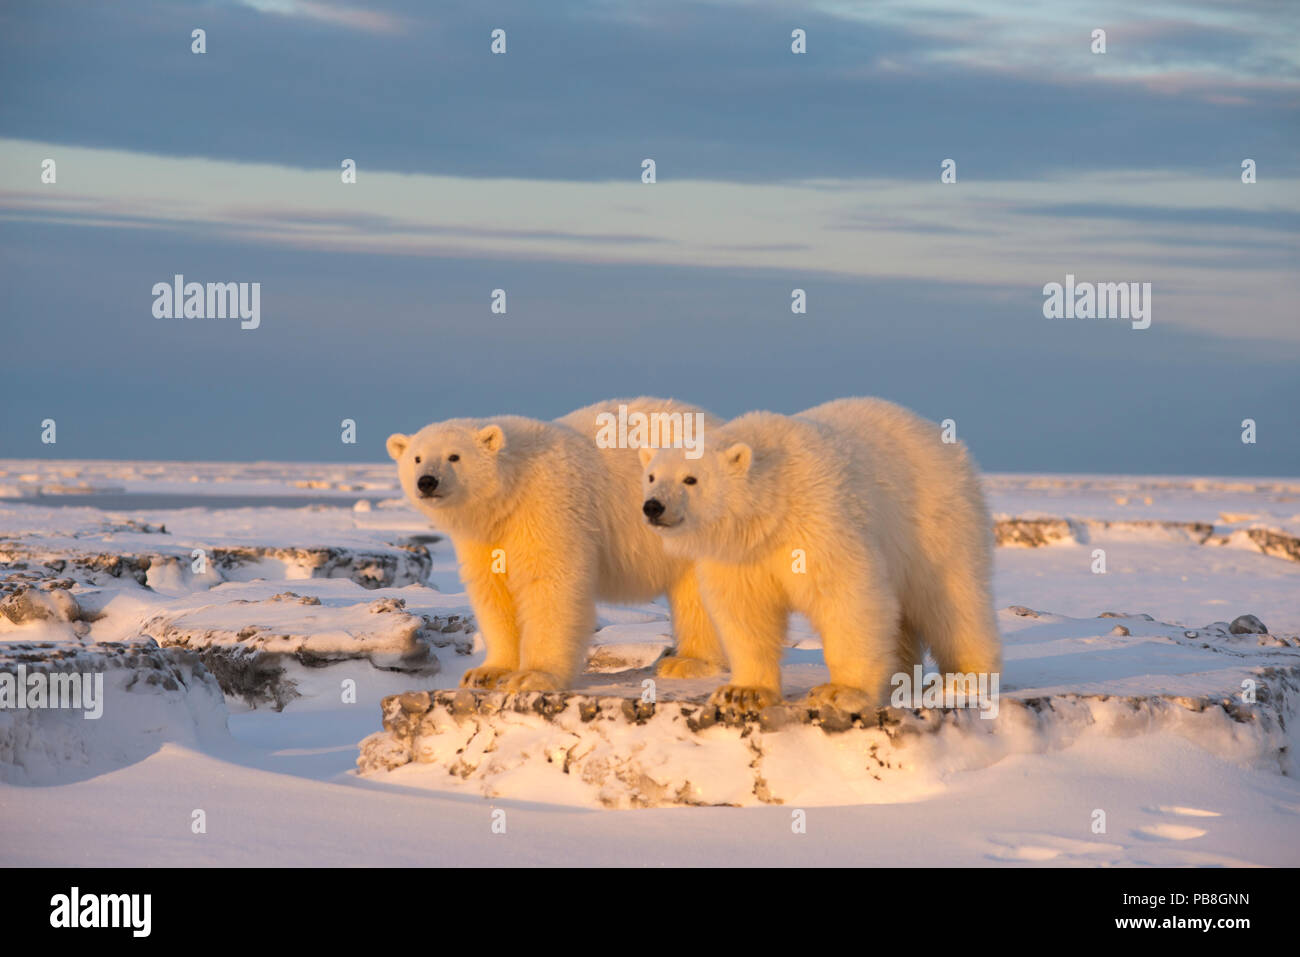 Two young Polar bears (Ursus maritimus) on newly formed pack ice, near Kaktovik, Barter Island, North Slope, Alaska, USA, October. Vulnerable species. - Stock Image